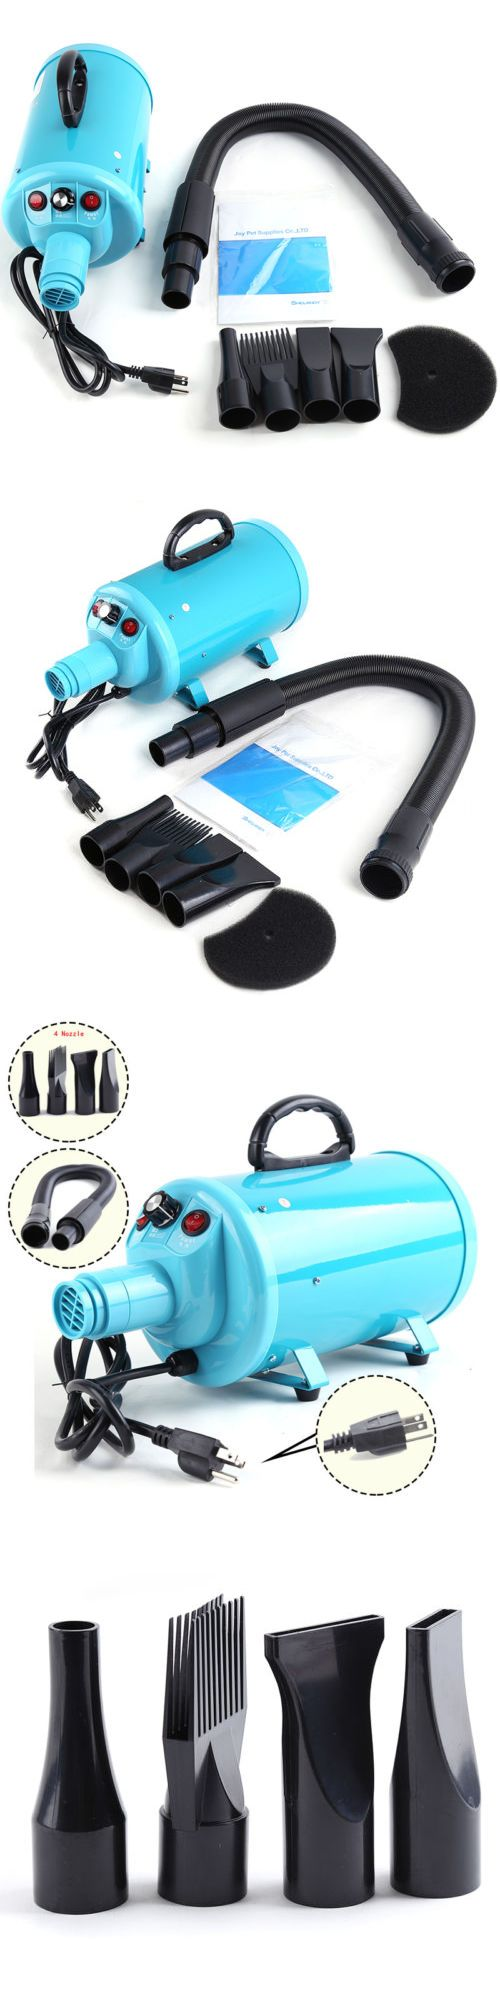 Dryers 146240: Pet Dryer Portable Air Mover Blower Heater Grooming Blue 4 Nozzle Animals Hair -> BUY IT NOW ONLY: $53.77 on eBay!